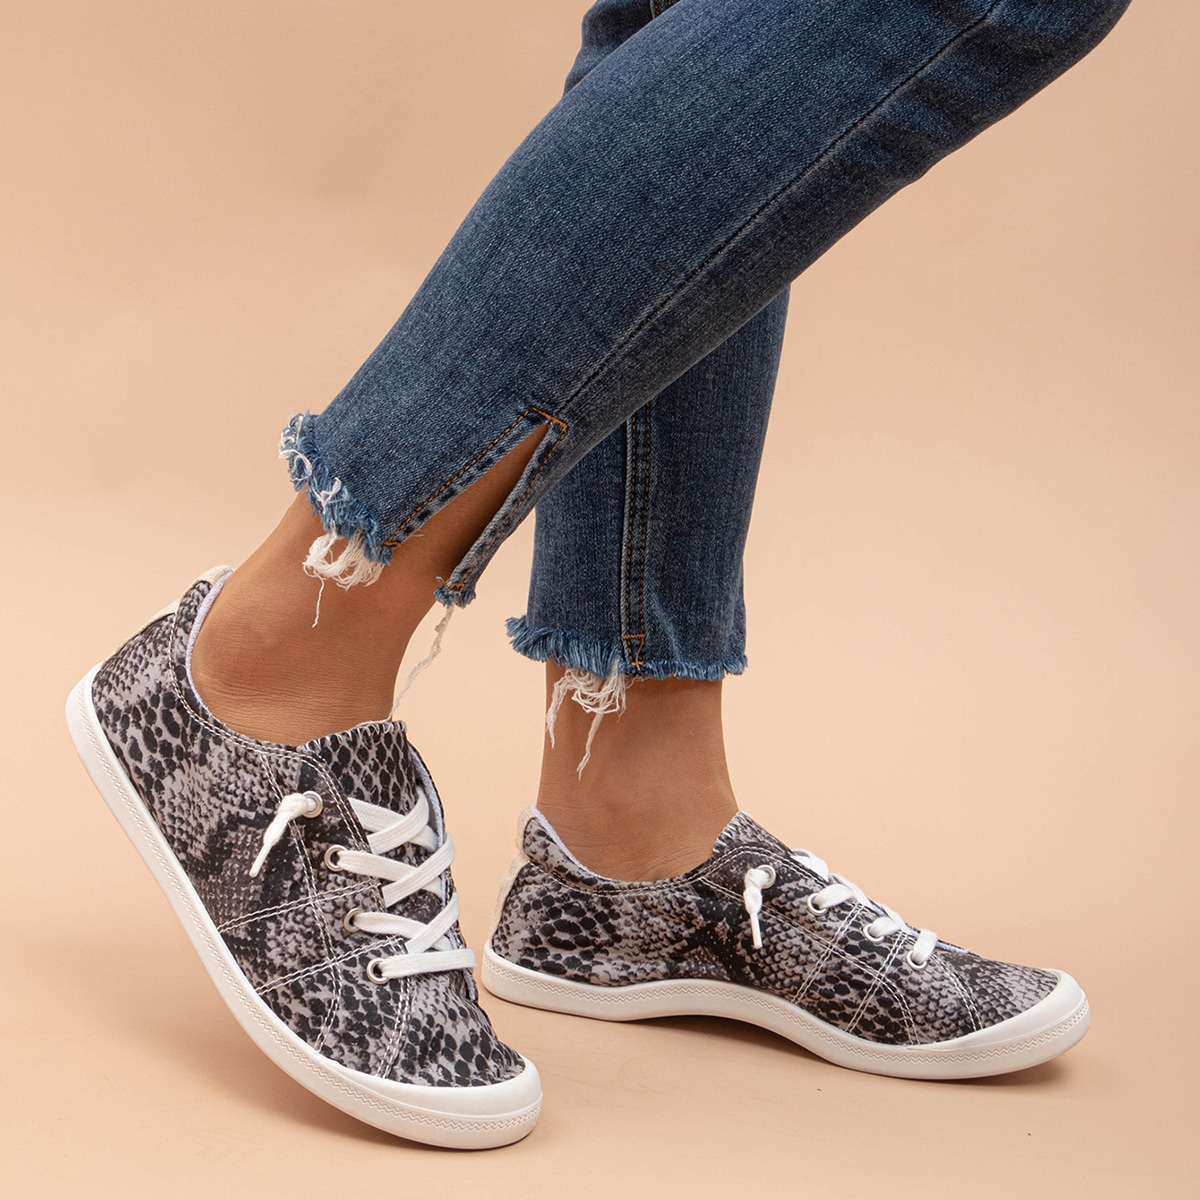 SHEIN / Snakeskin Print Lace-up Front Sneakers